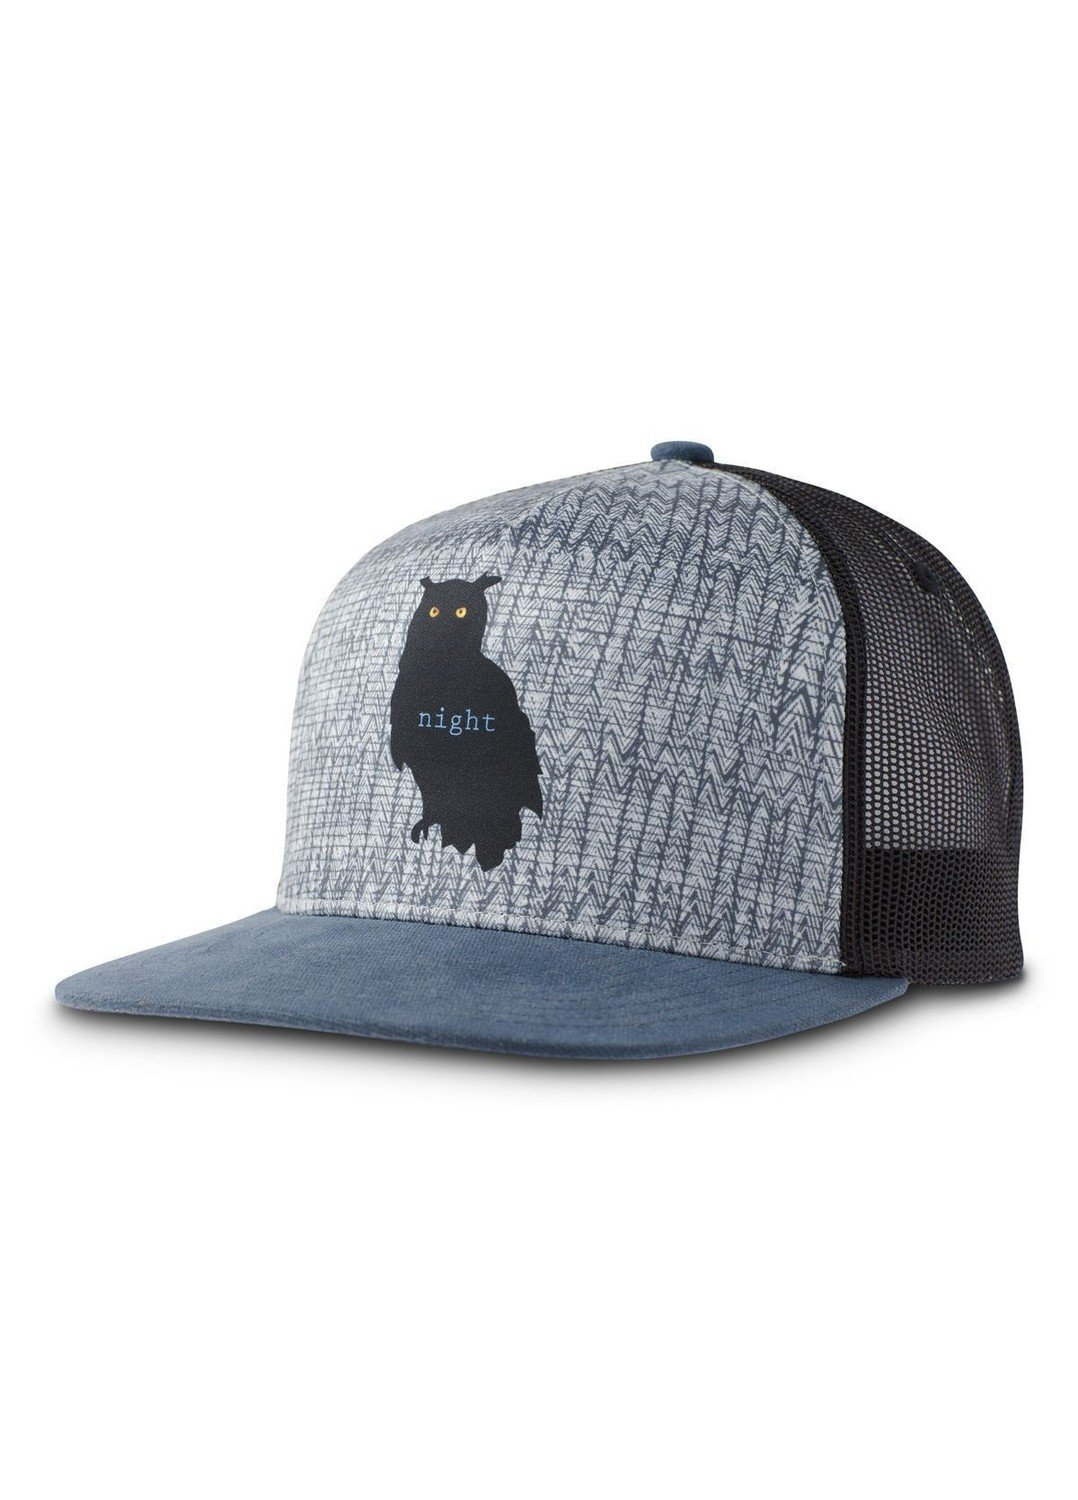 prAna Journeyman Trucker Hat Night Owl